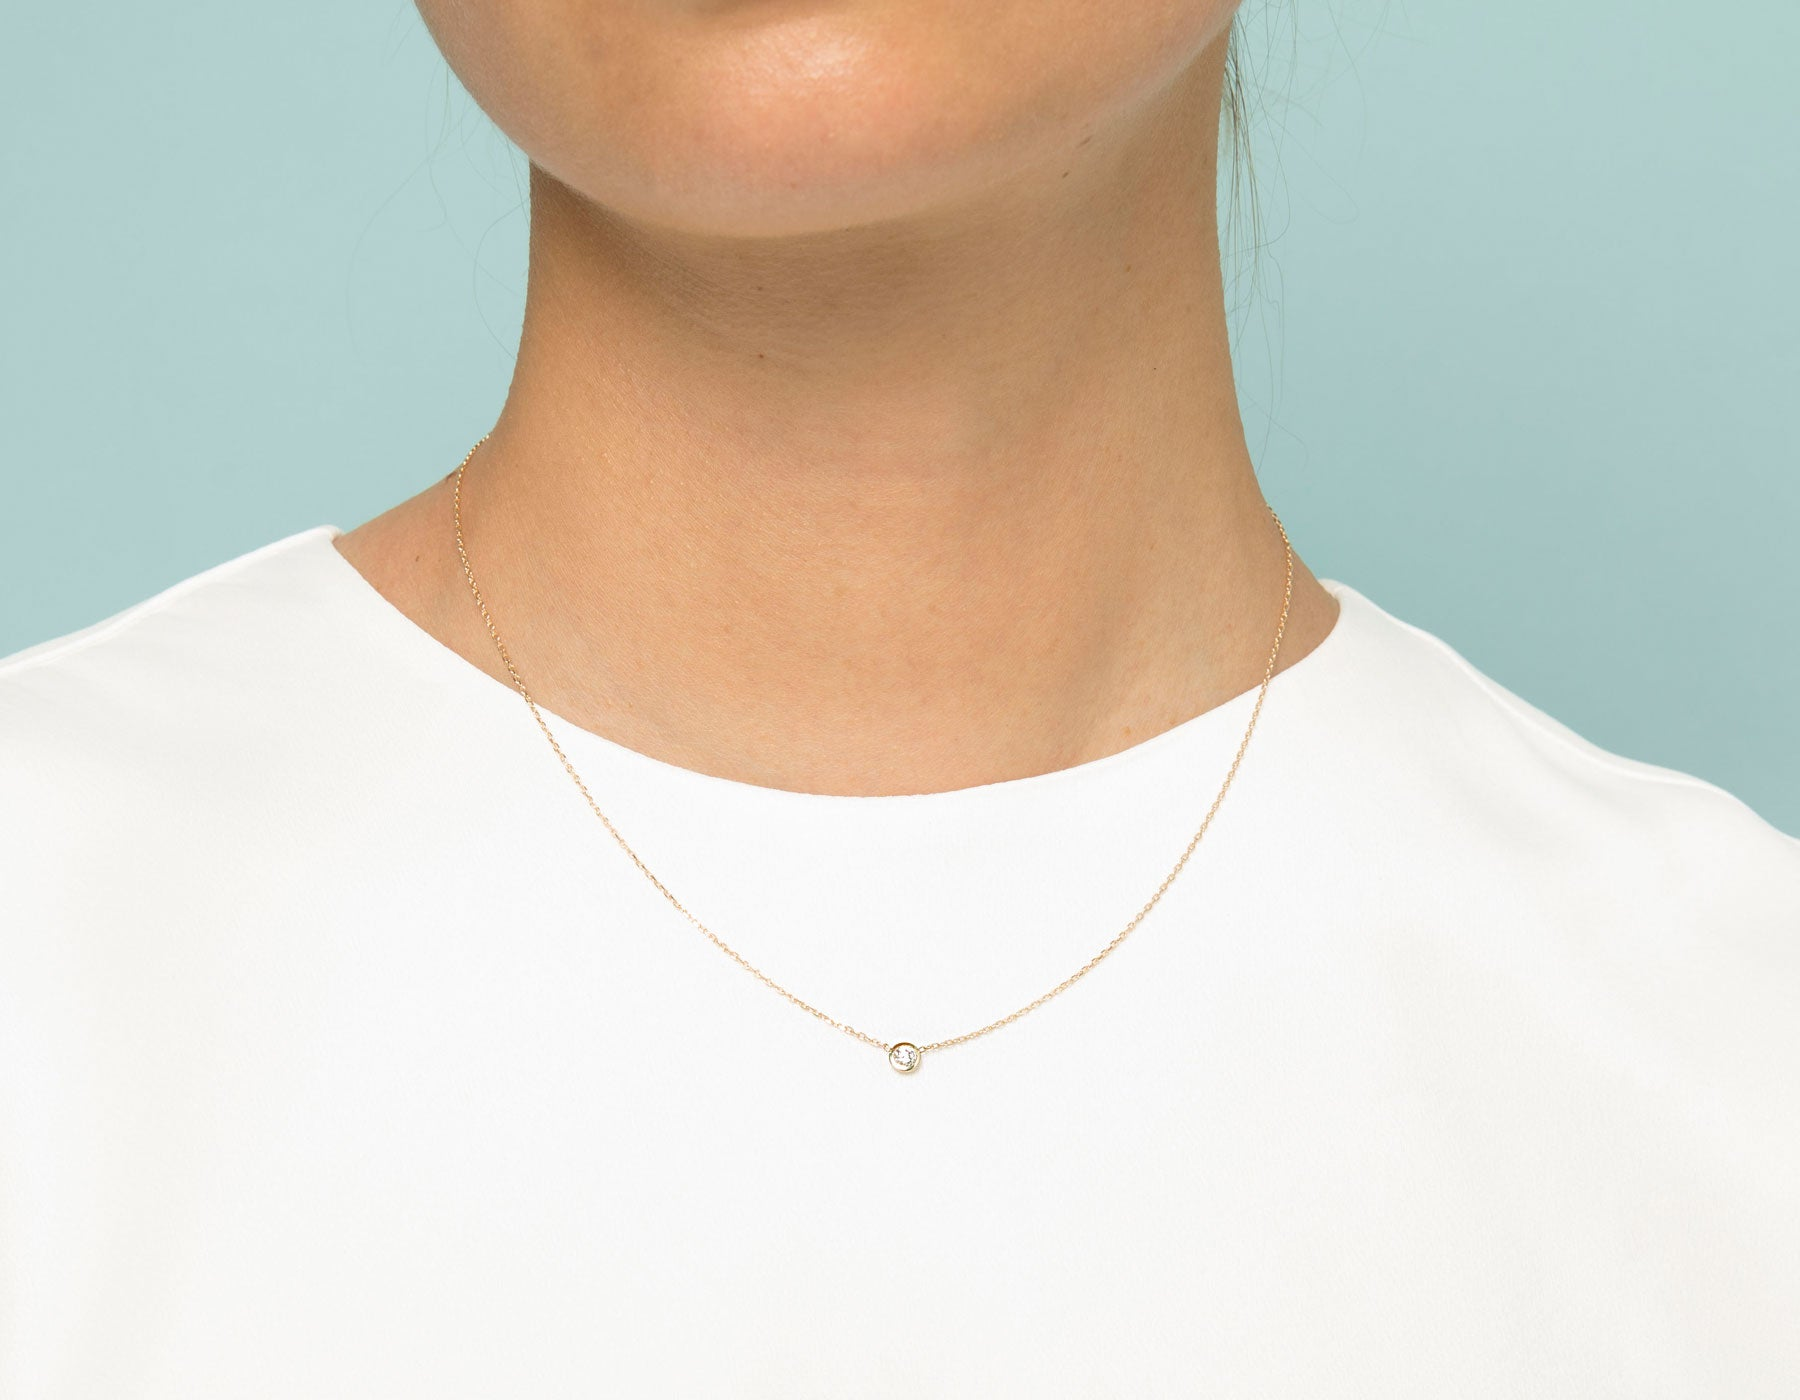 Model wearing dainty minimalist Round Diamond Bezel Necklace by Vrai, 14K Yellow Gold